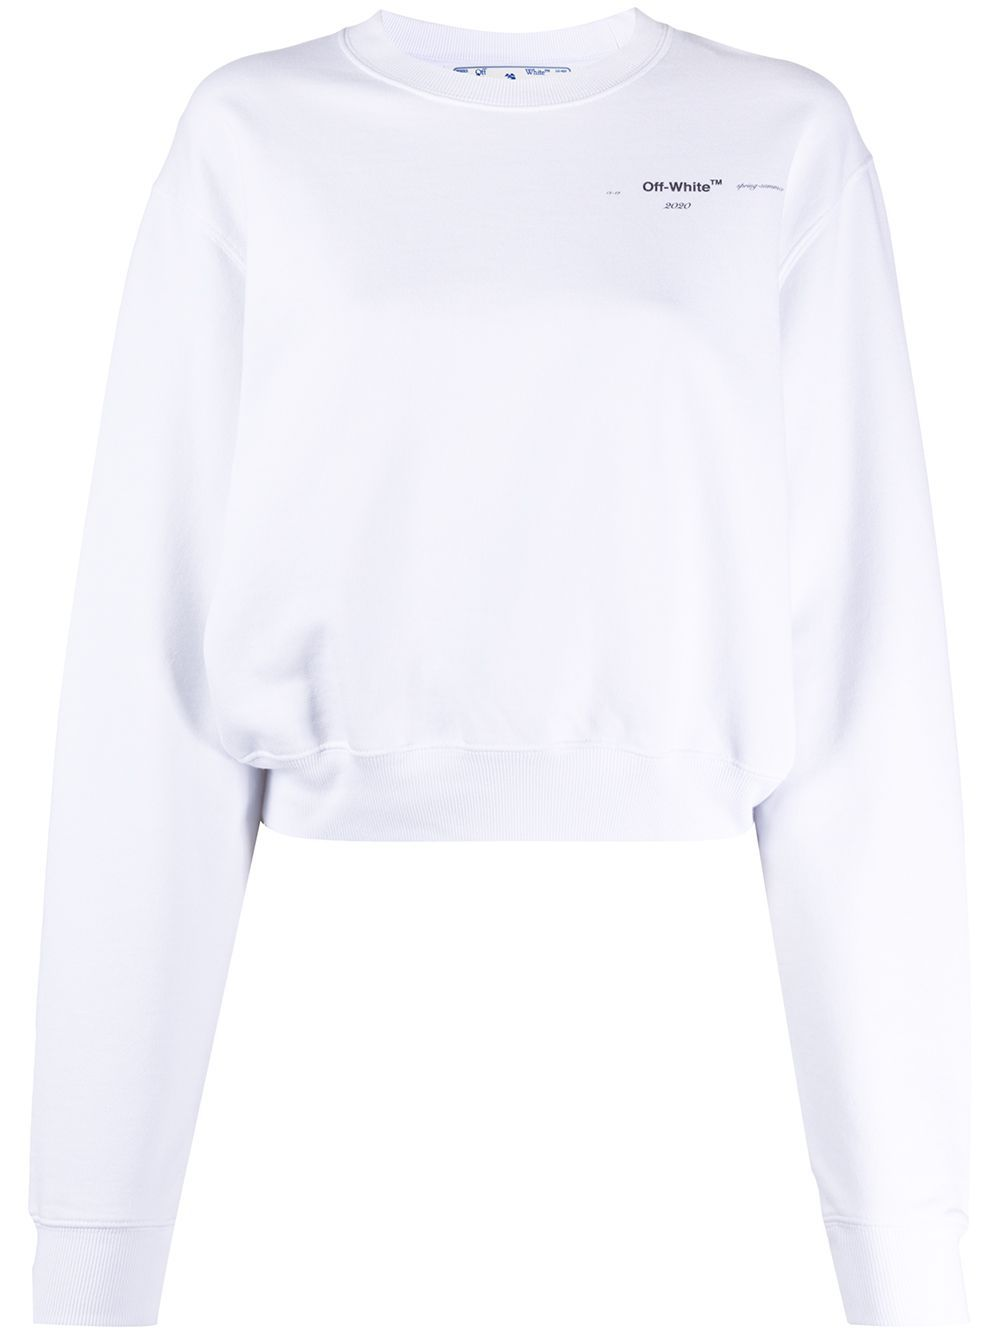 Off White Meteor Palette Cropped Sweatshirt Farfetch In 2021 Off White Clothing Off White Fashion White Outfits For Women [ 1334 x 1000 Pixel ]